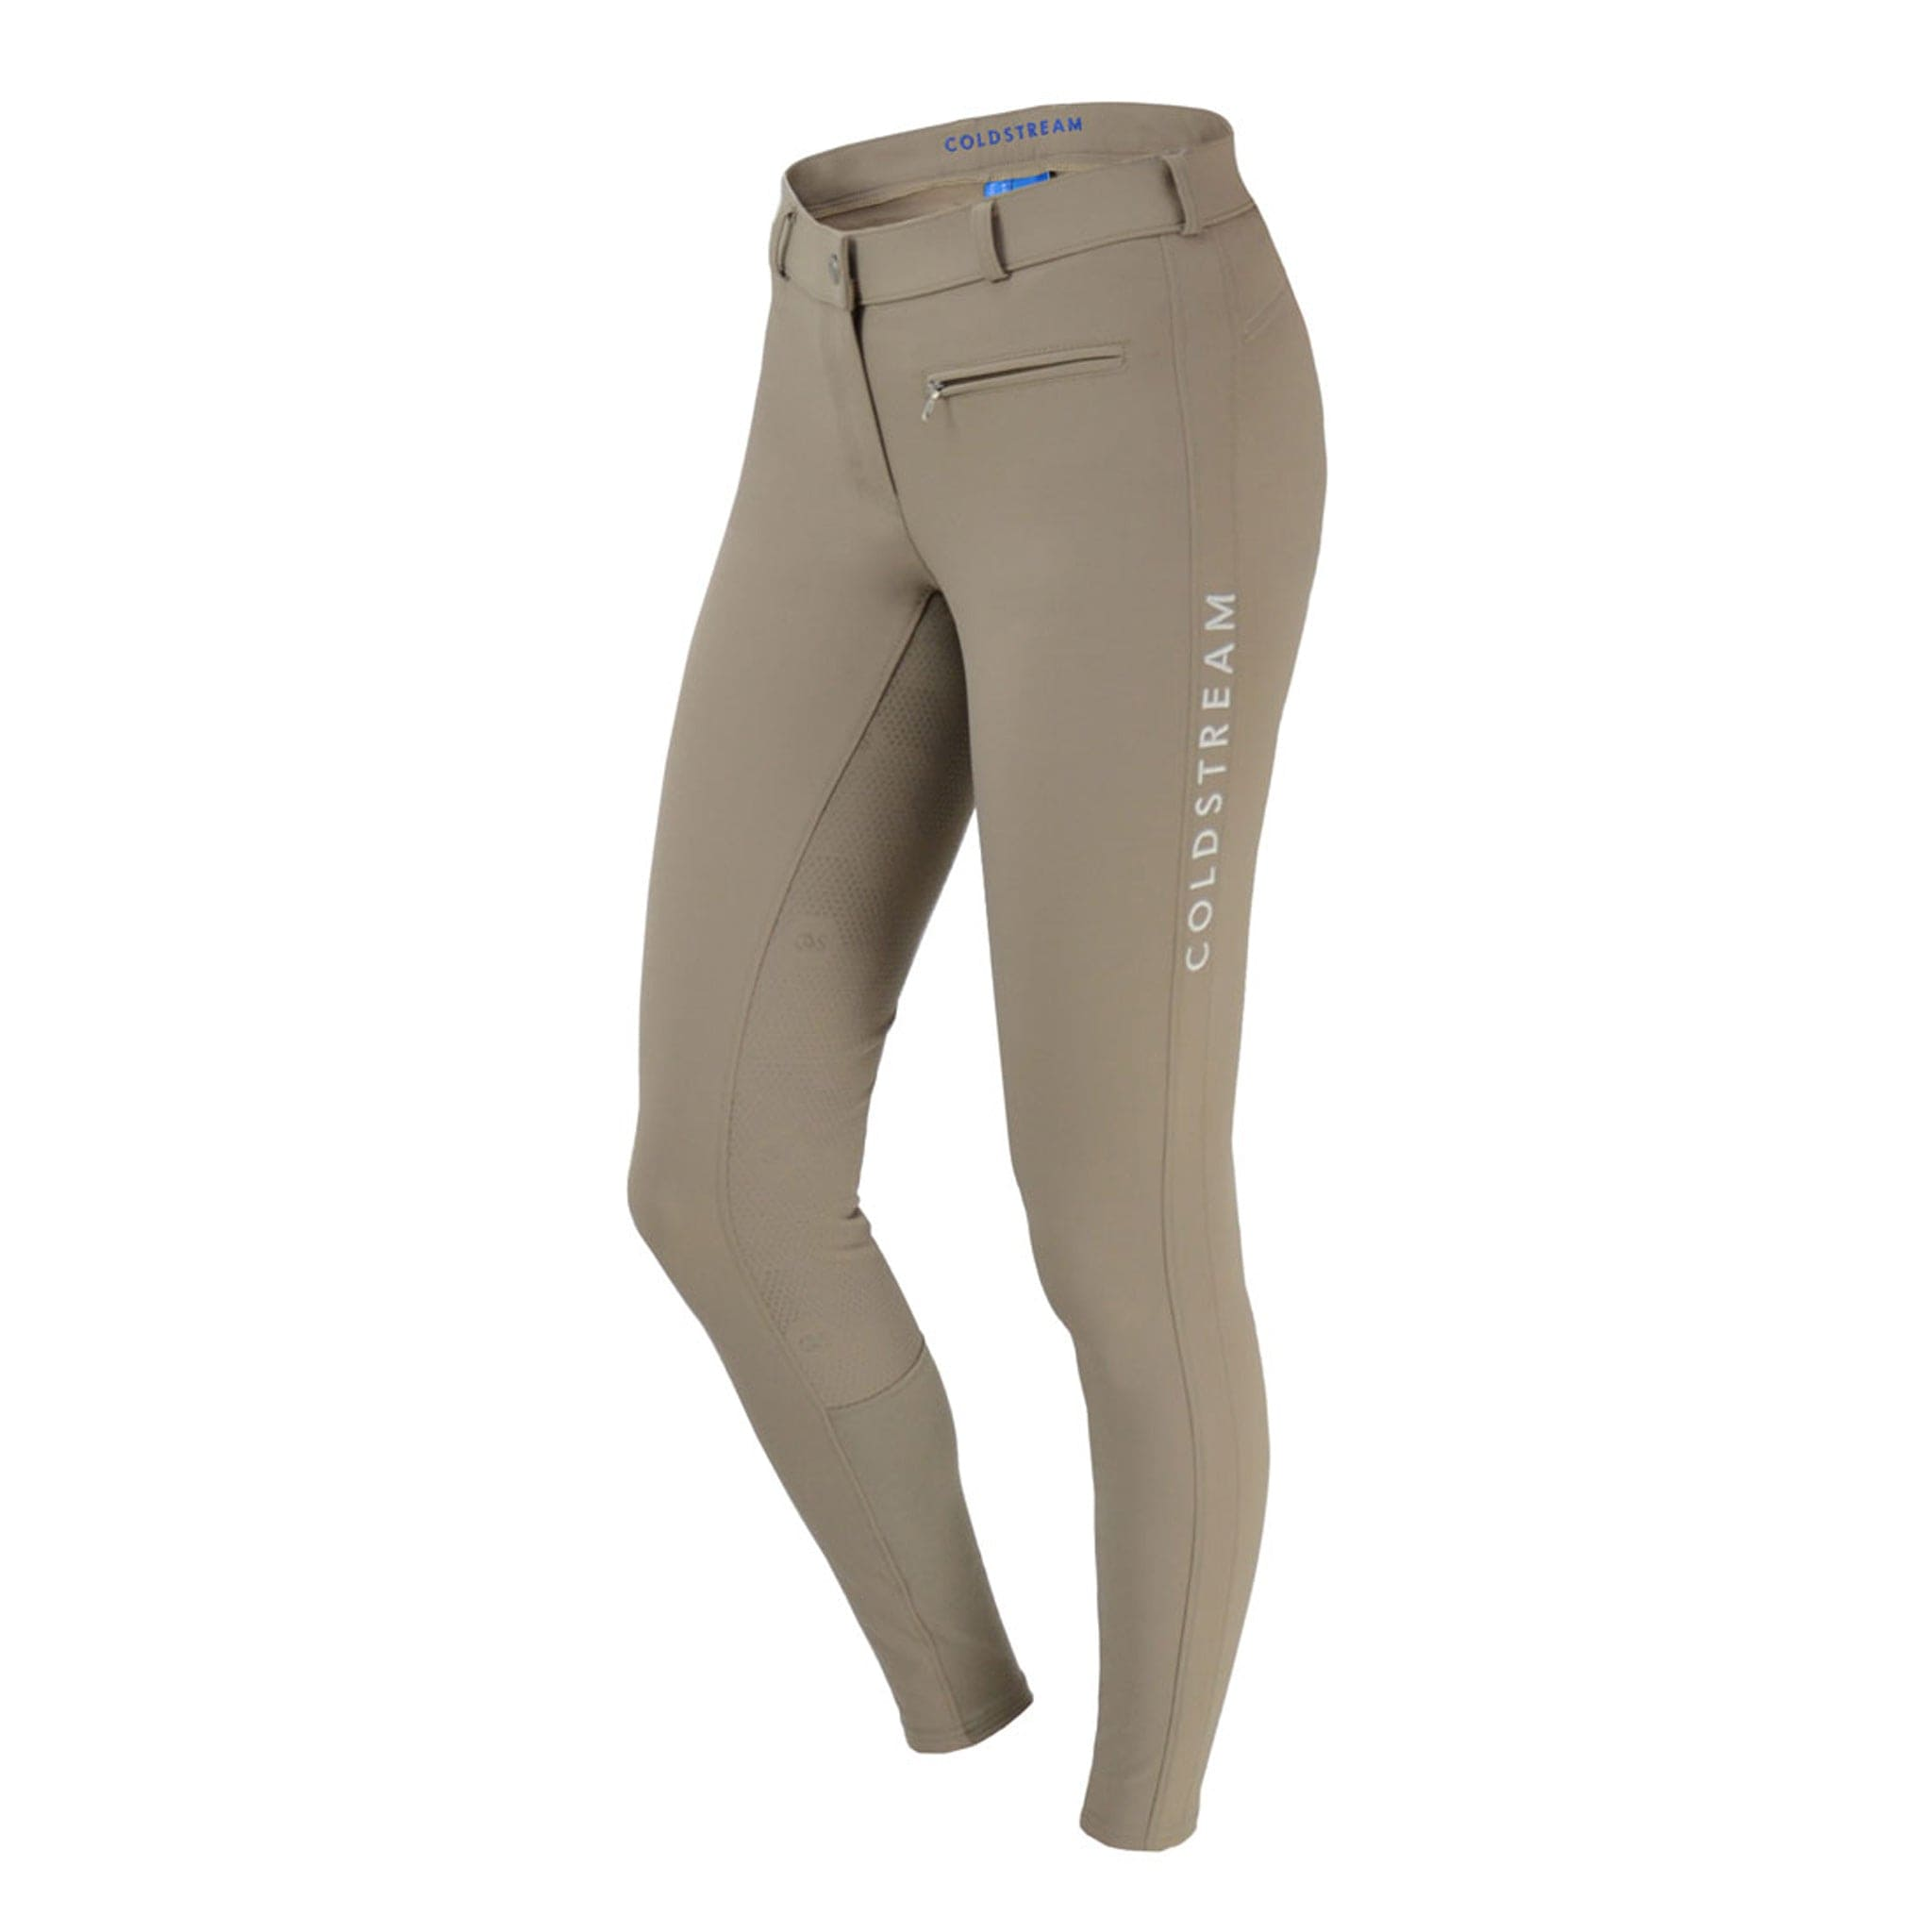 Hy Coldstream Kilham Silicone Full Seat Competition Breeches 24982 Taupe Front